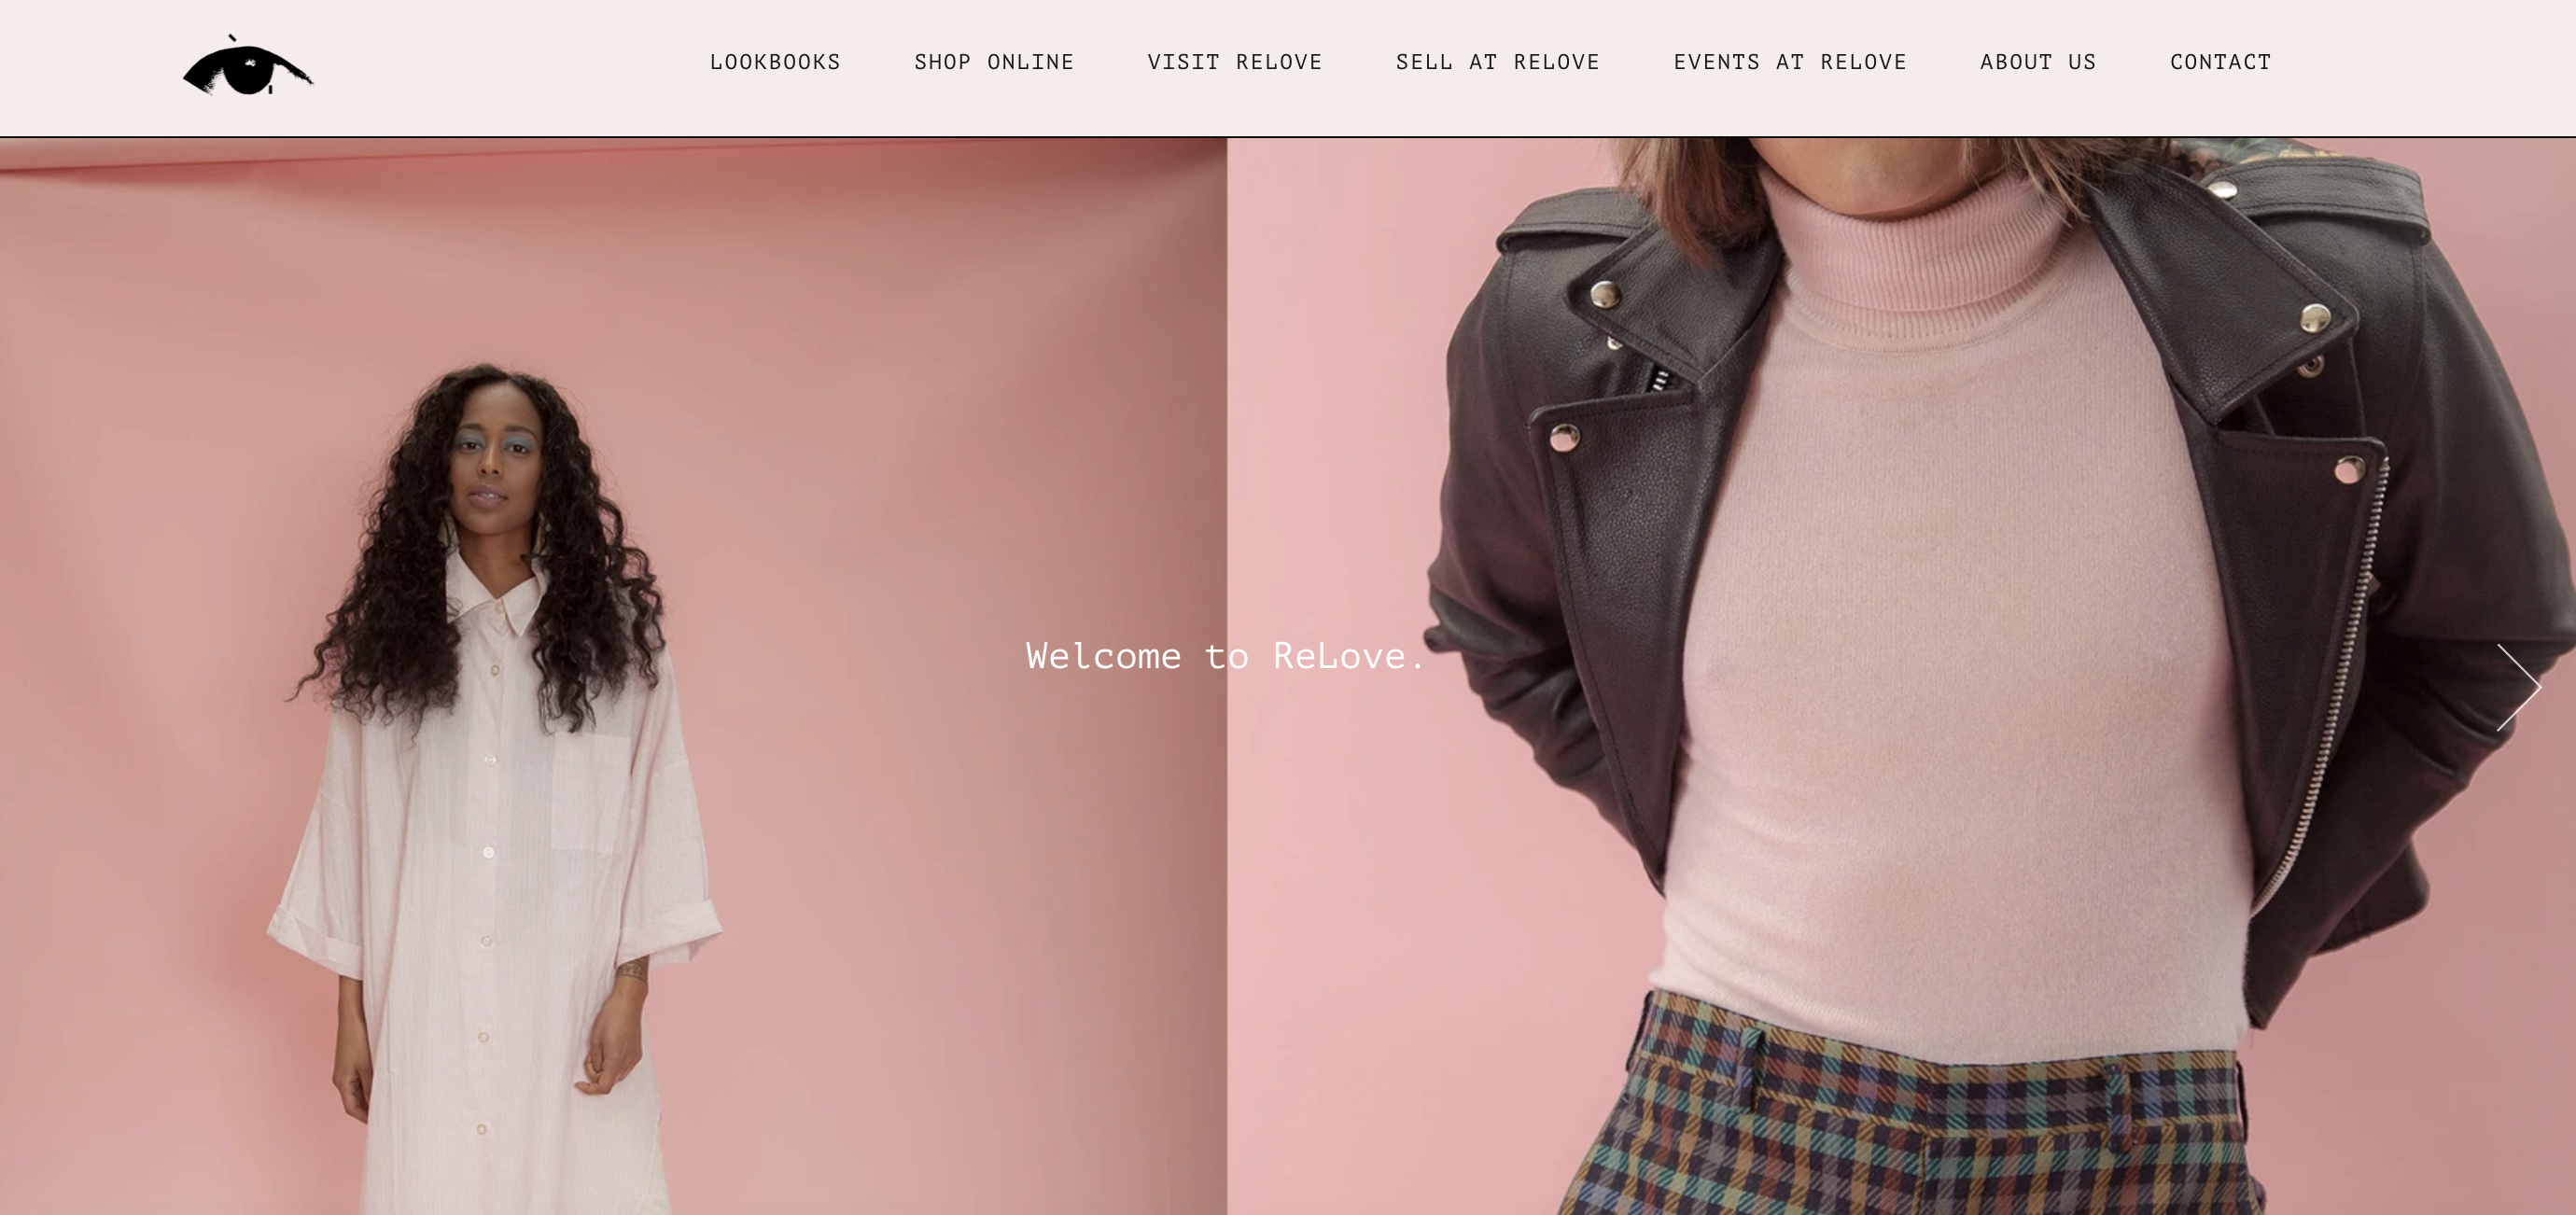 76 Best Online Shopping Sites For Women Where To Buy Women S Fashion Online